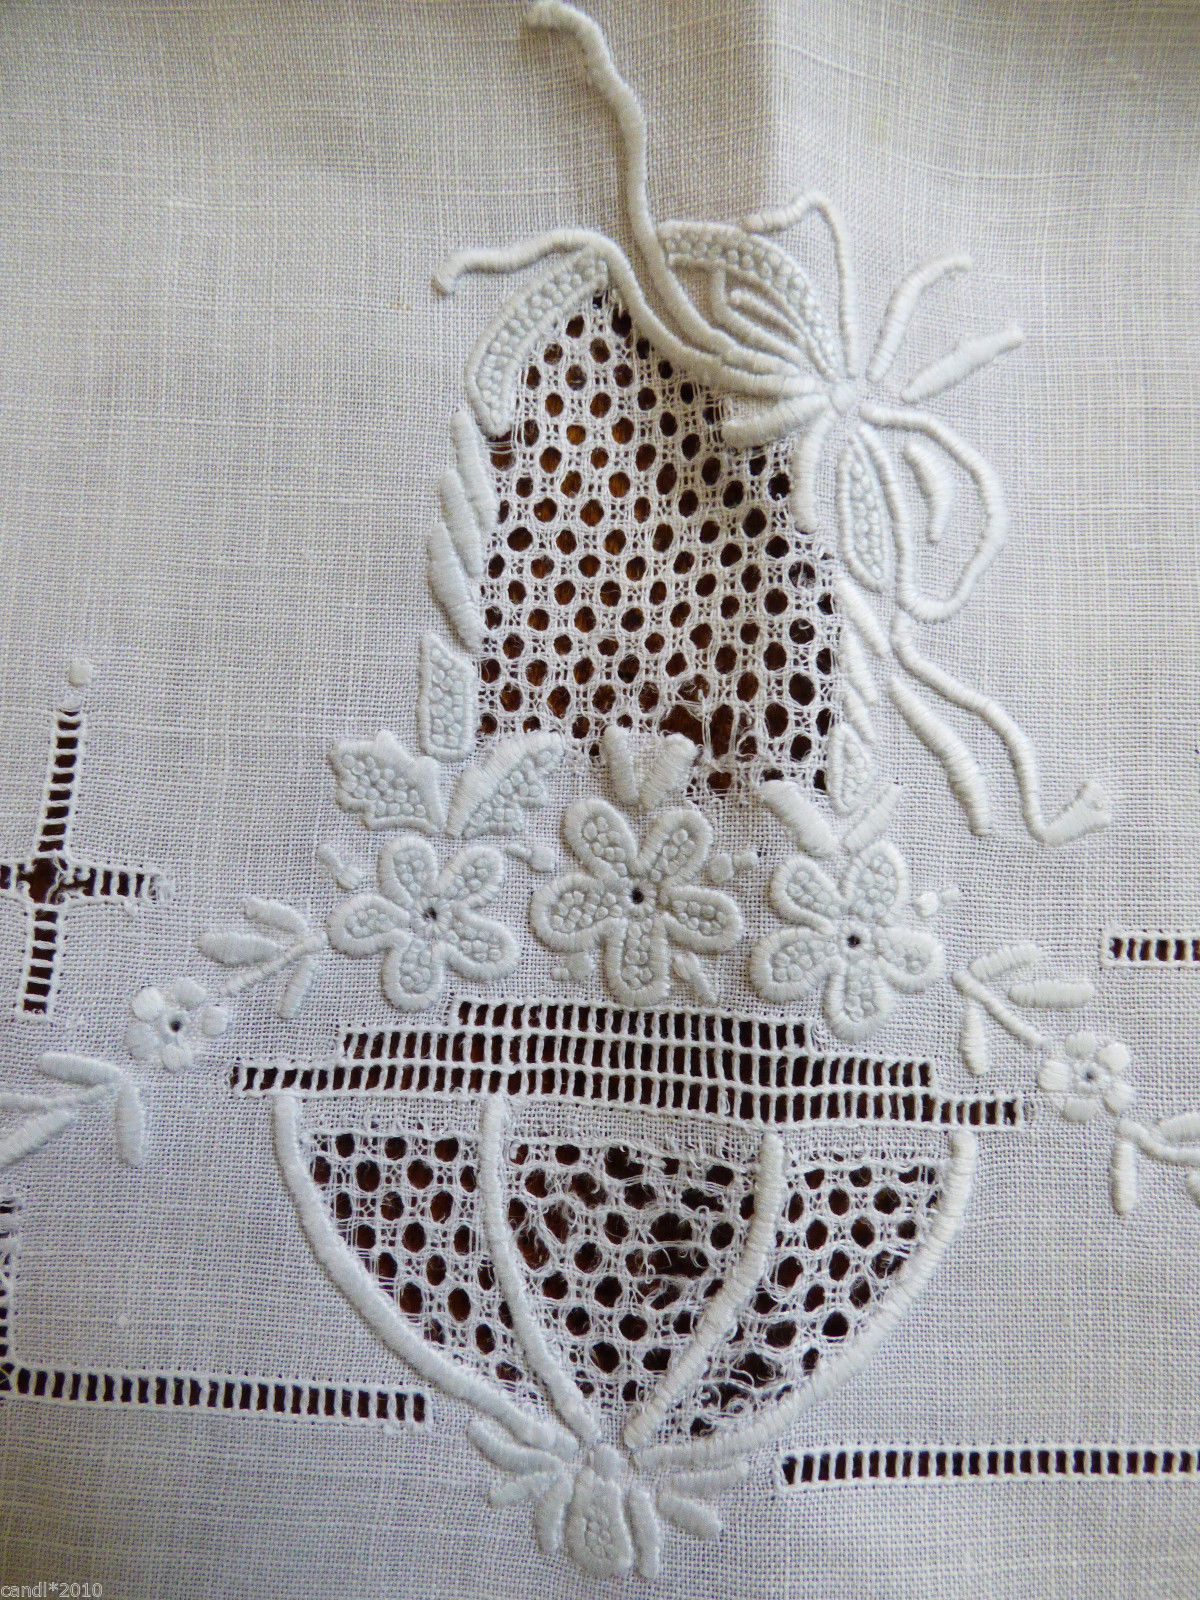 Lot of 2 VTG Madeira Embroidery Table Doily Center Mat Dresser Table Decor craft